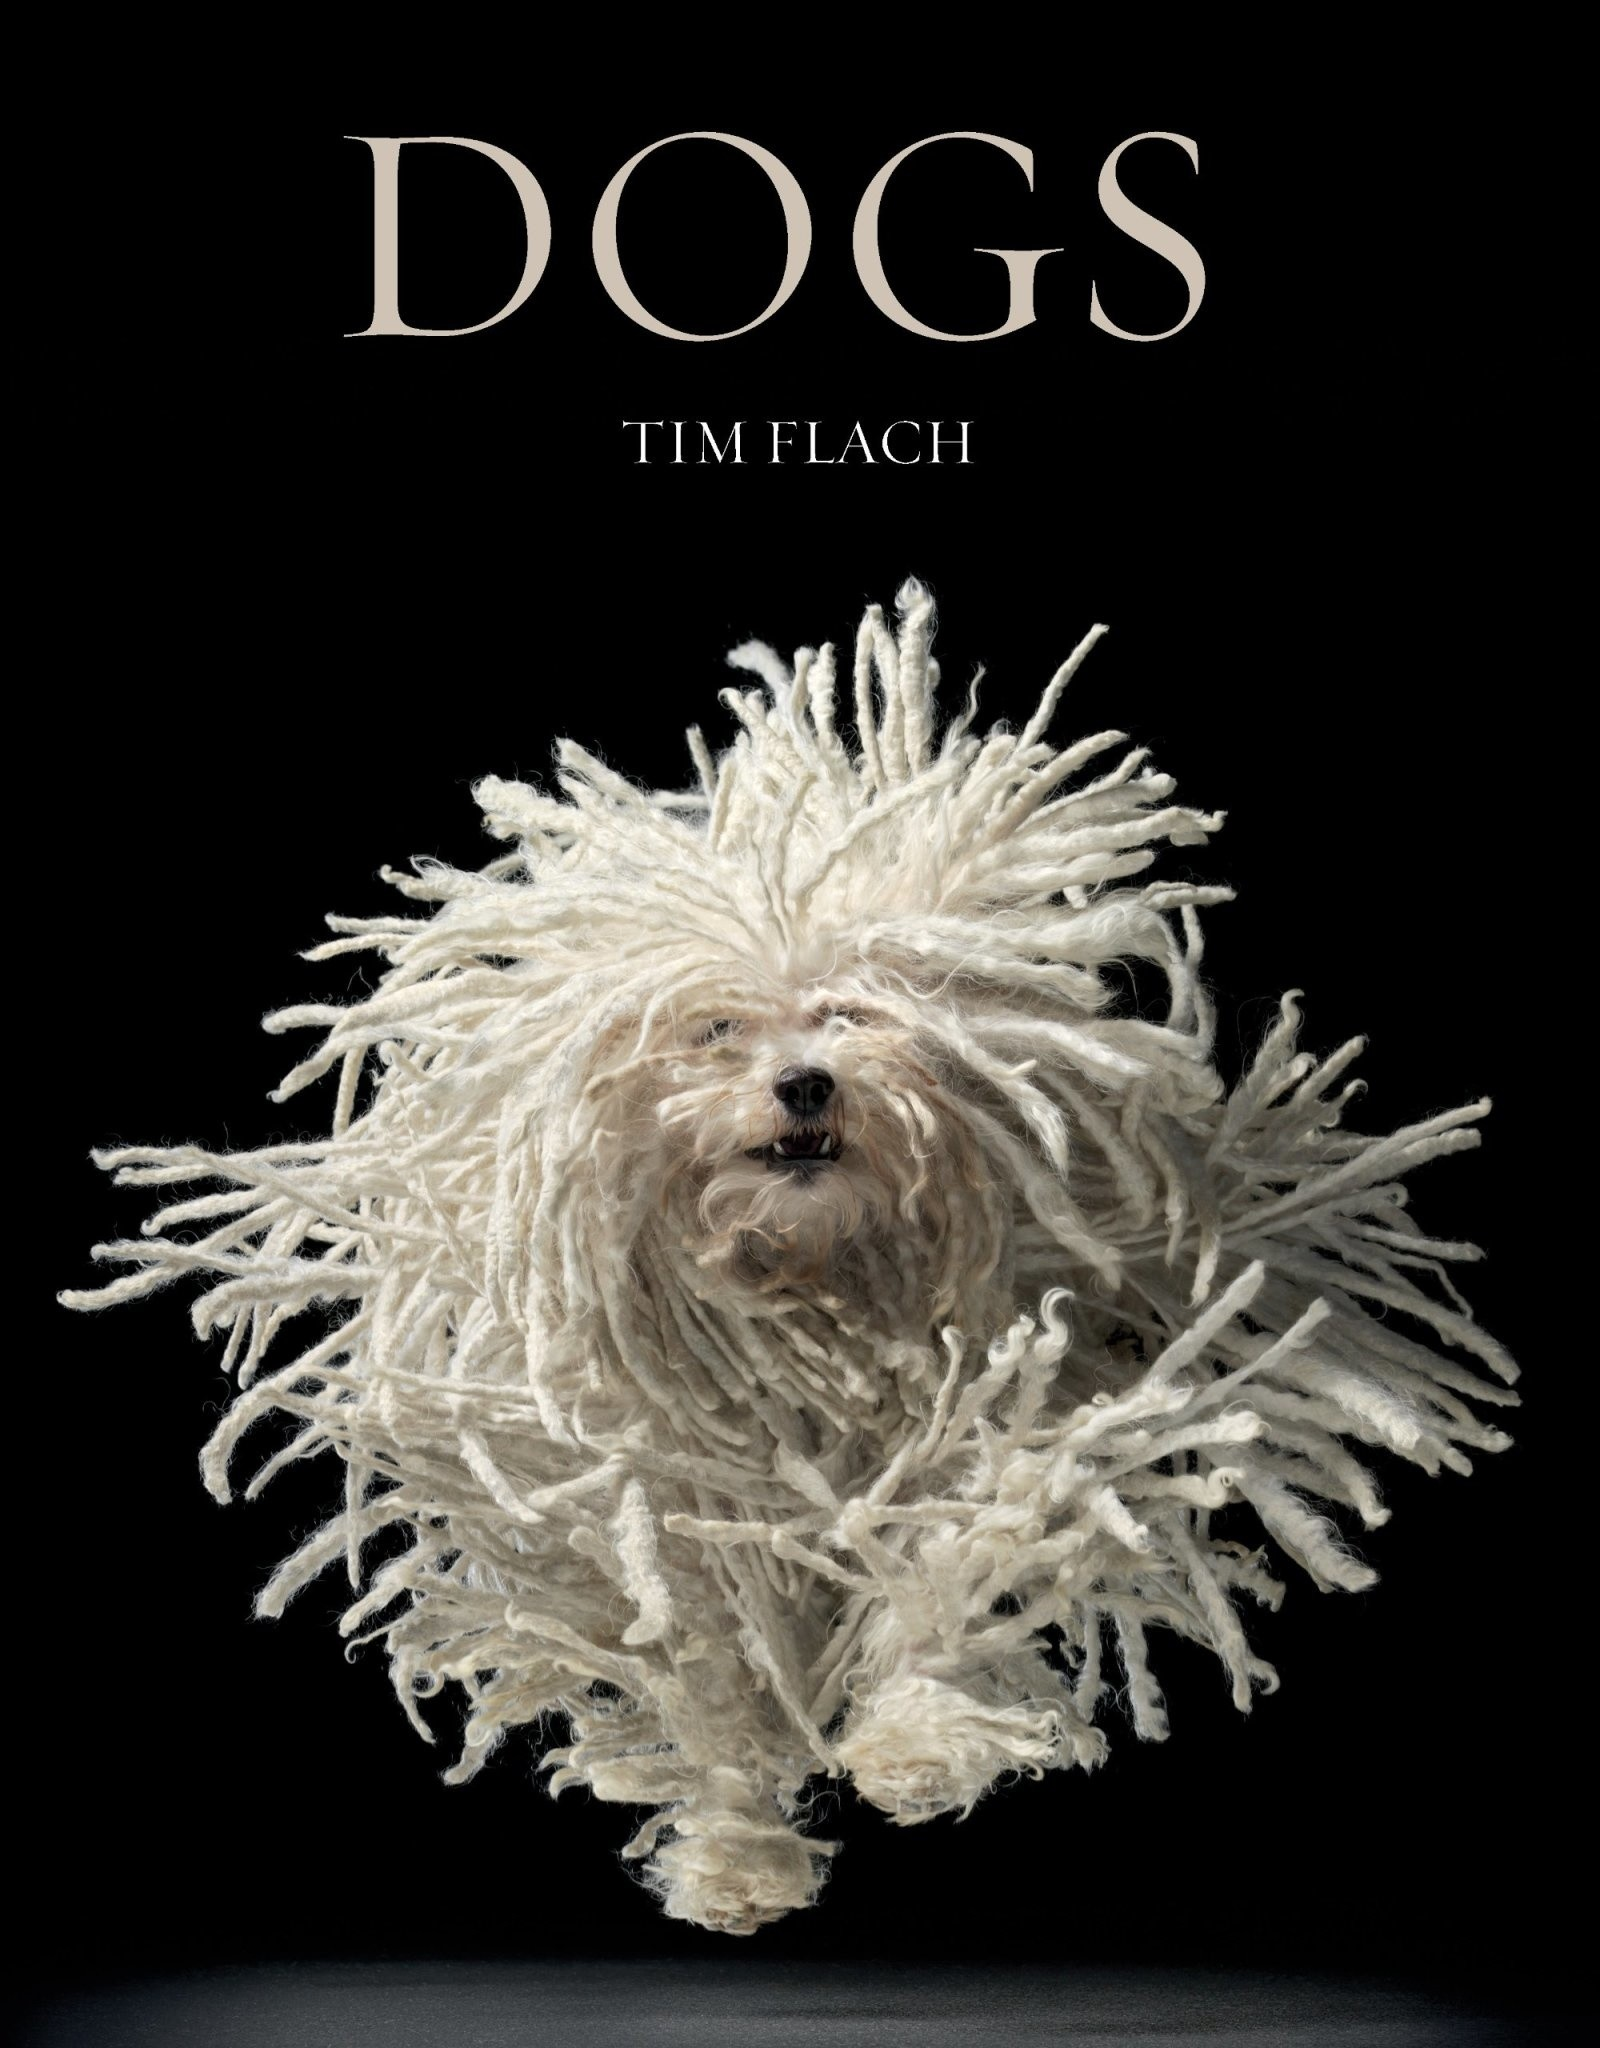 Dogs by Flach